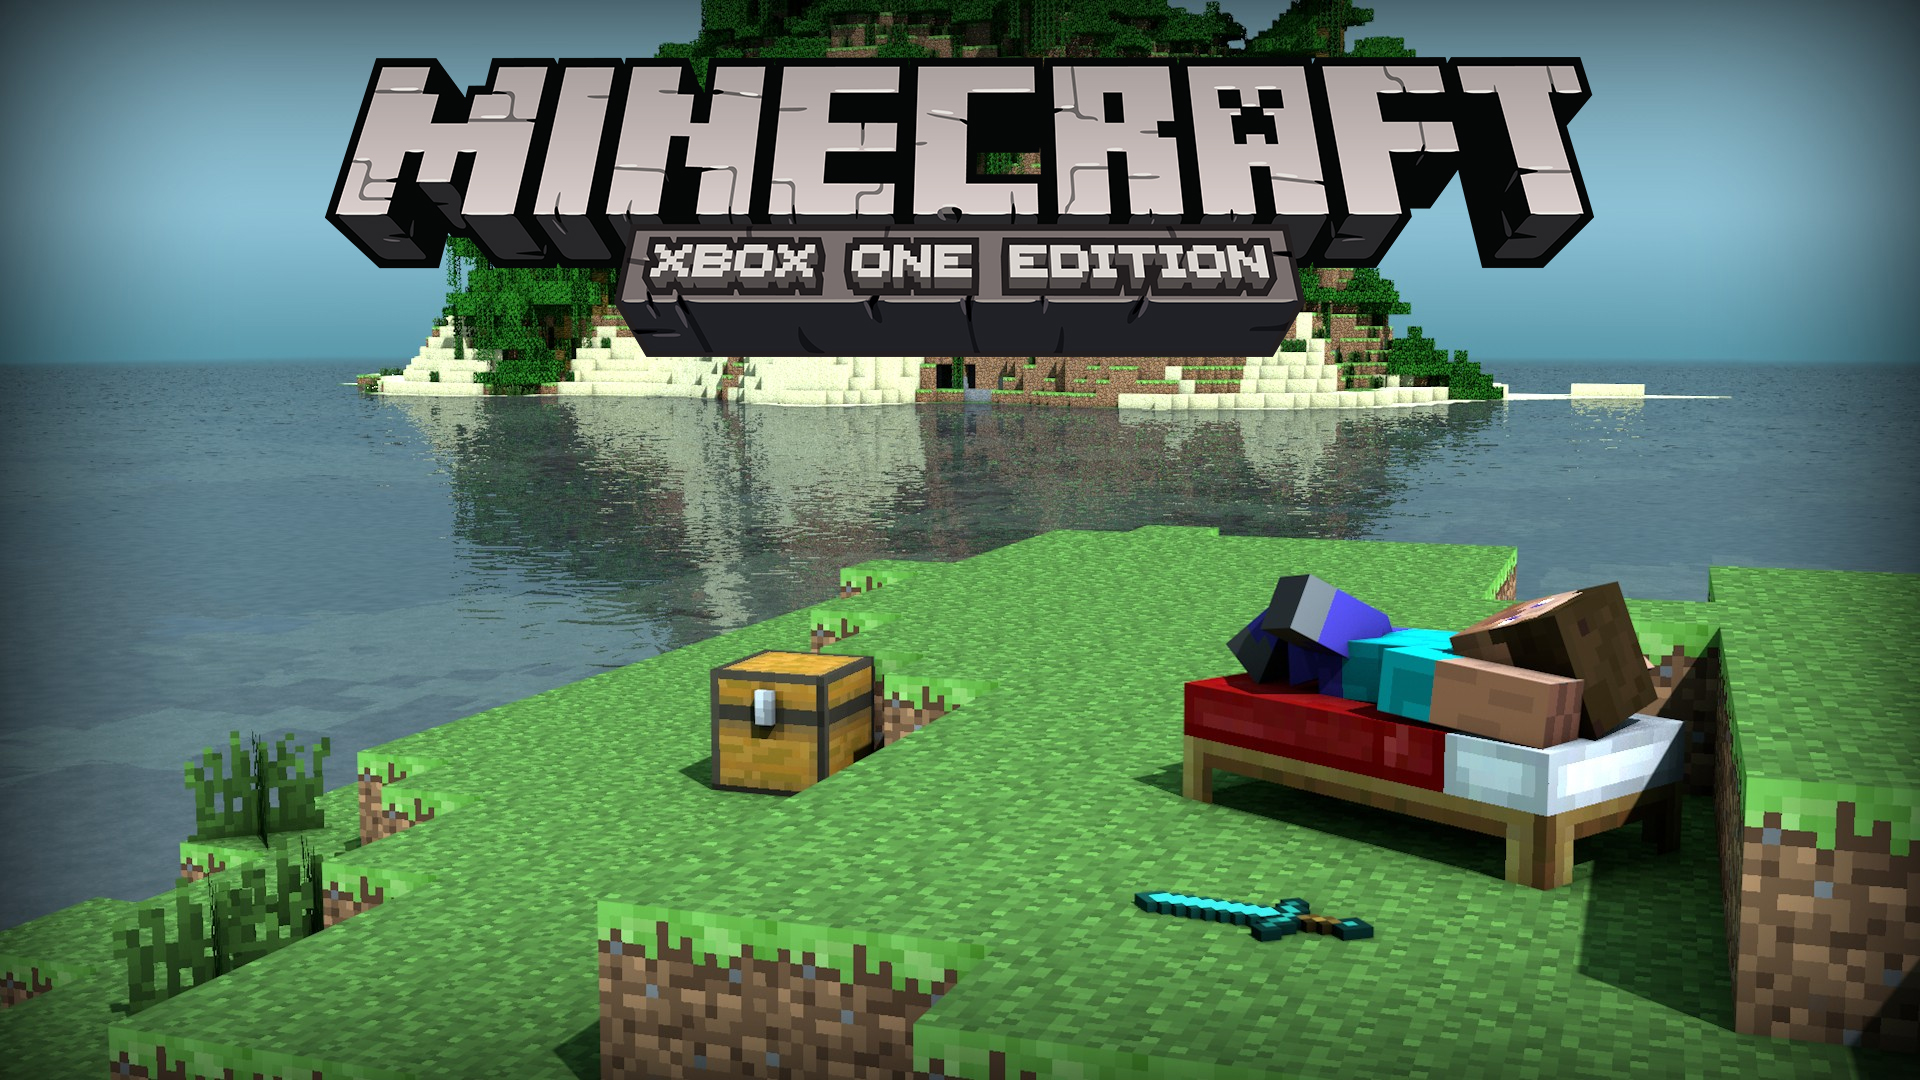 From minecraft xbox one edition to minecraft xbox 360 edition